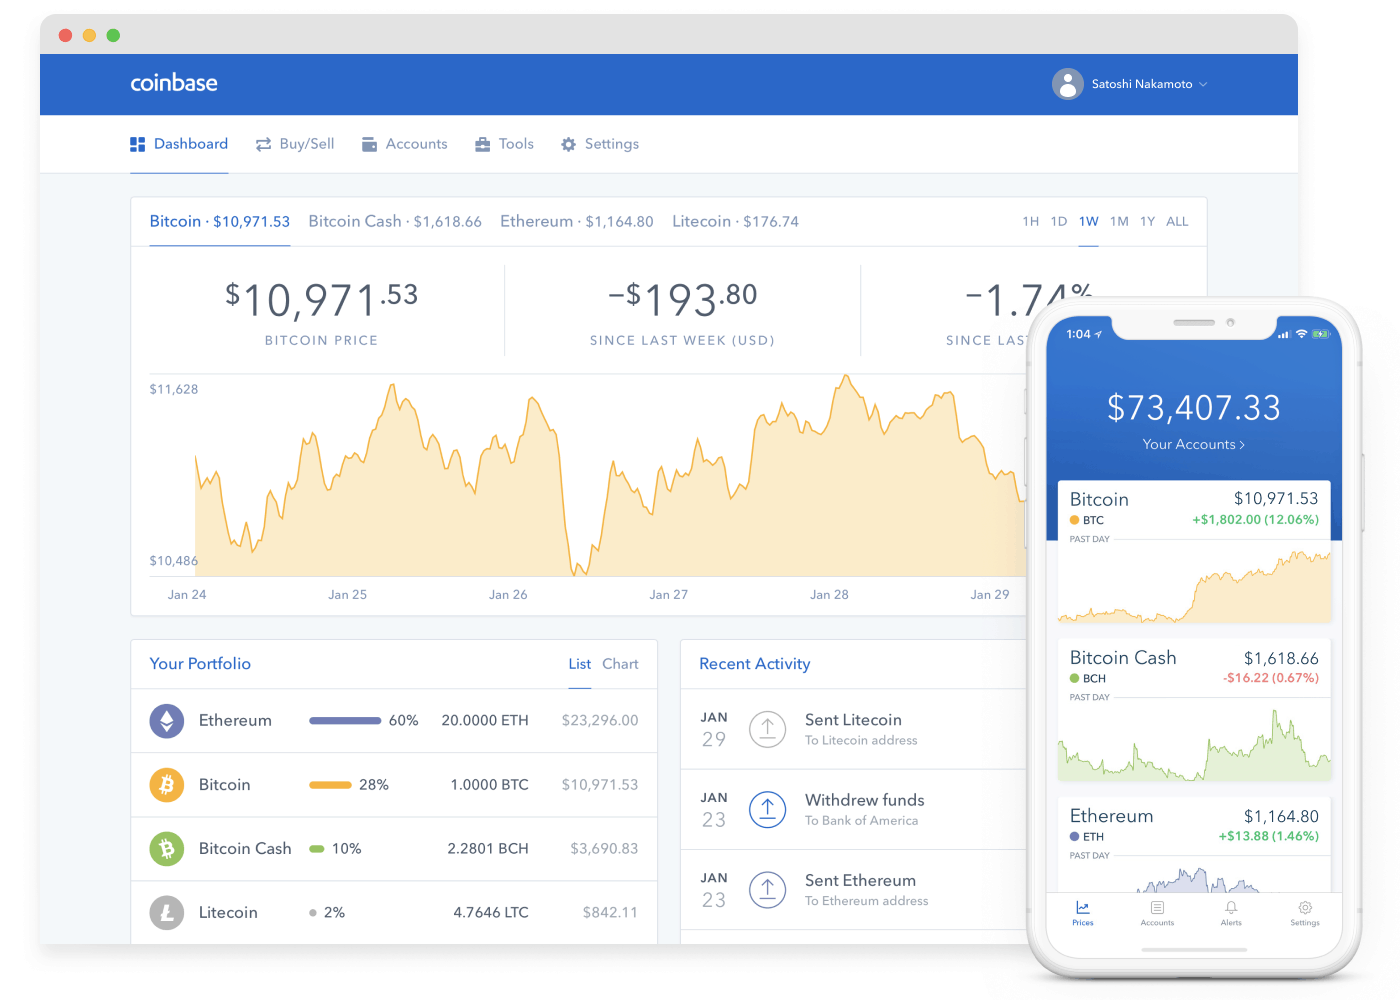 Coinbase platform and app